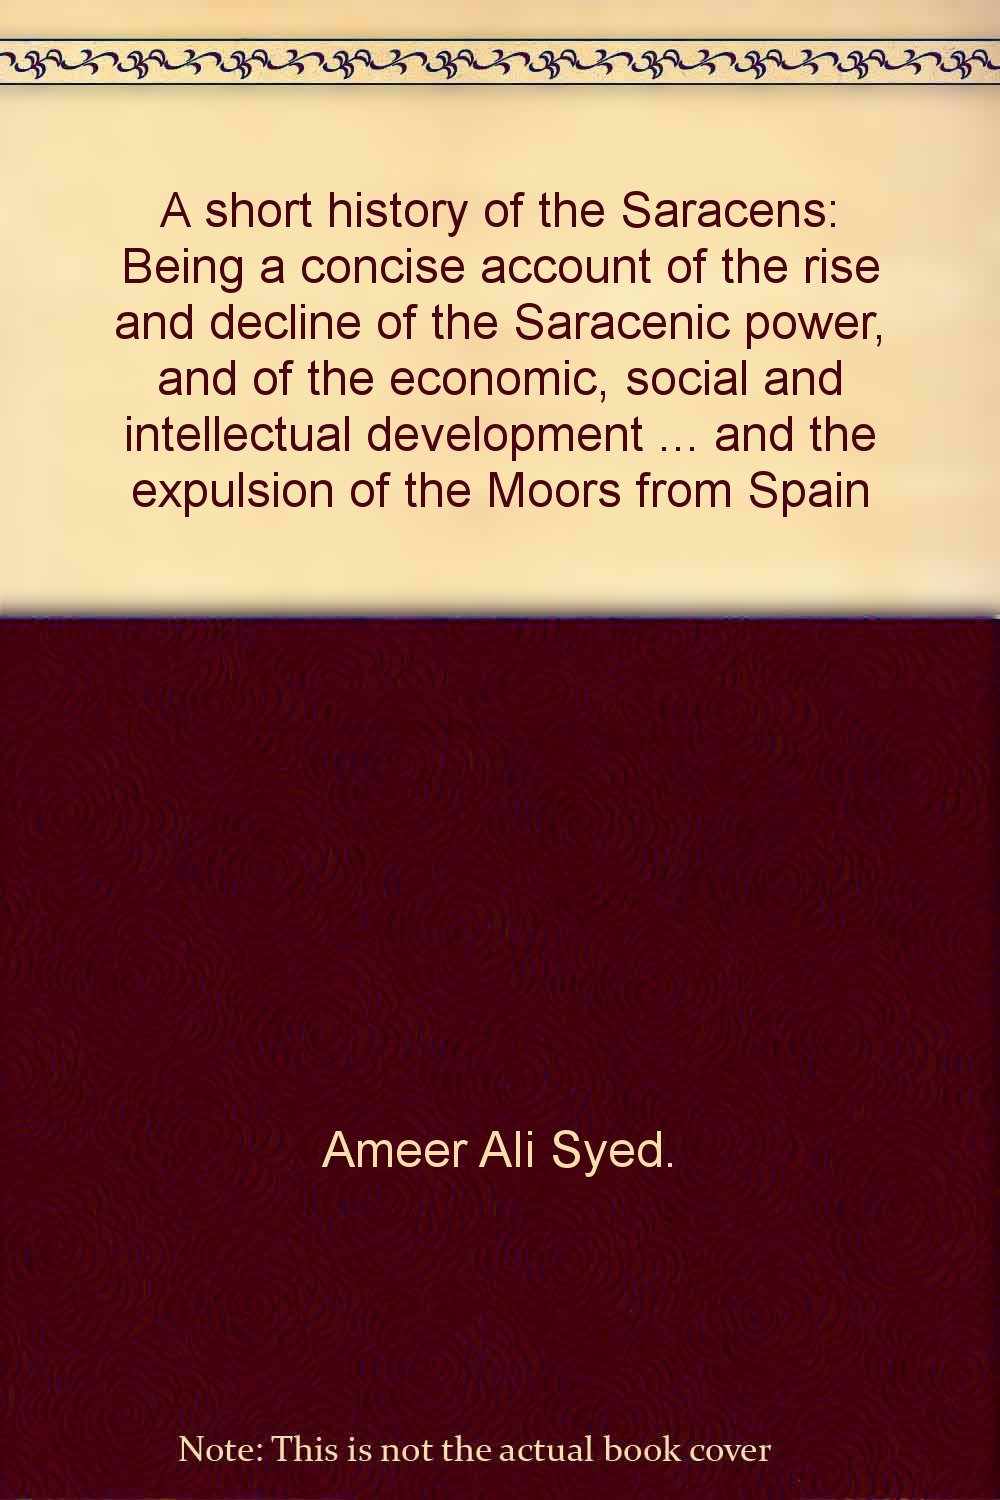 A short history of the Saracens: Being a concise account of the rise and decline of the Saracenic power, and of the economic, social and intellectual ... and the expulsion of the Moors from Spain